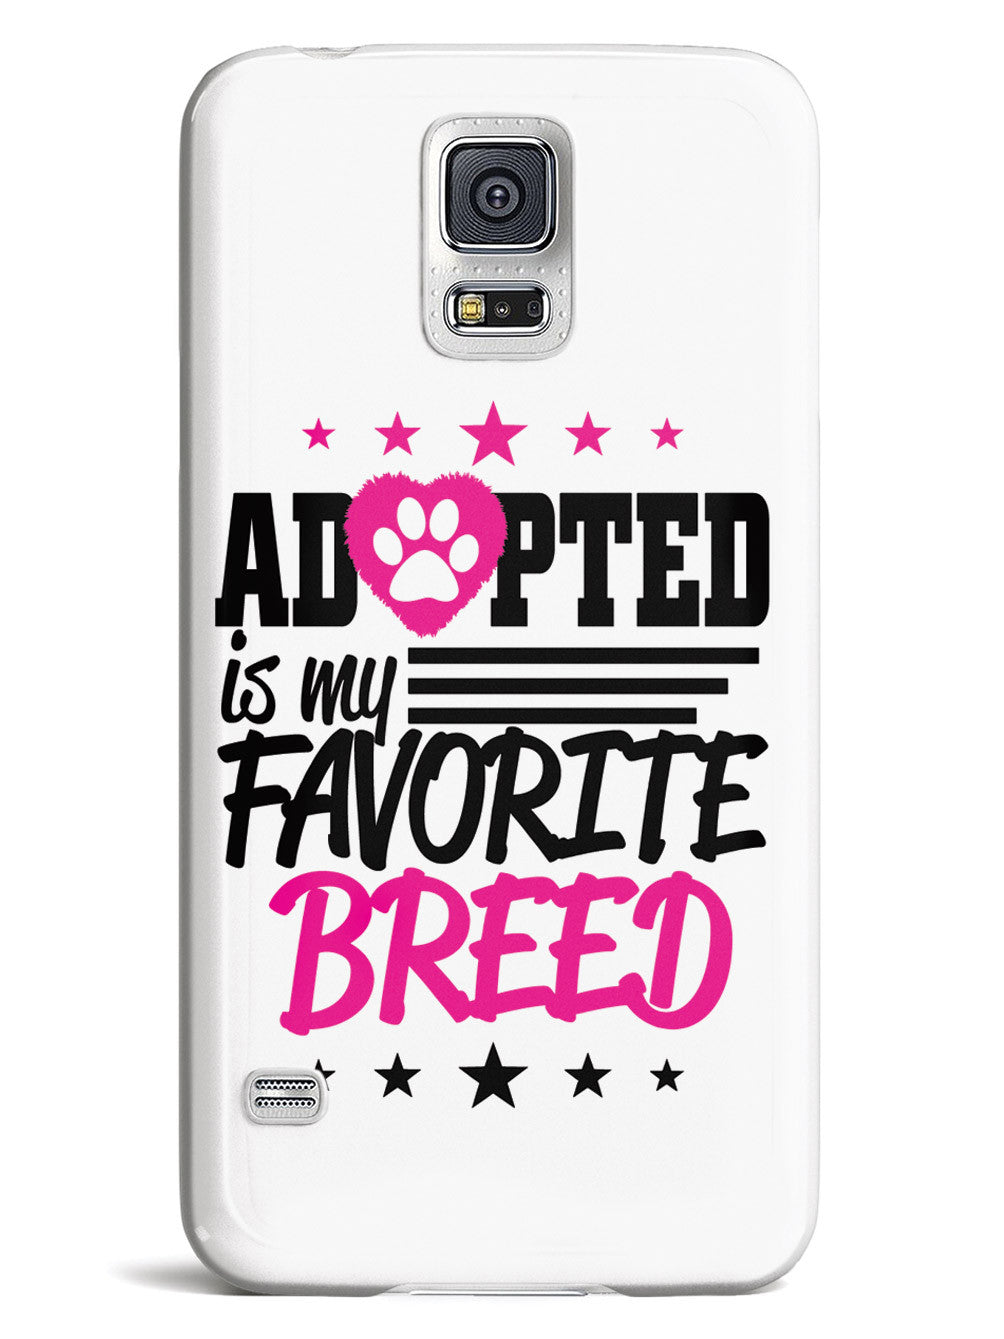 My Favorite Breed is Adopted - White Case